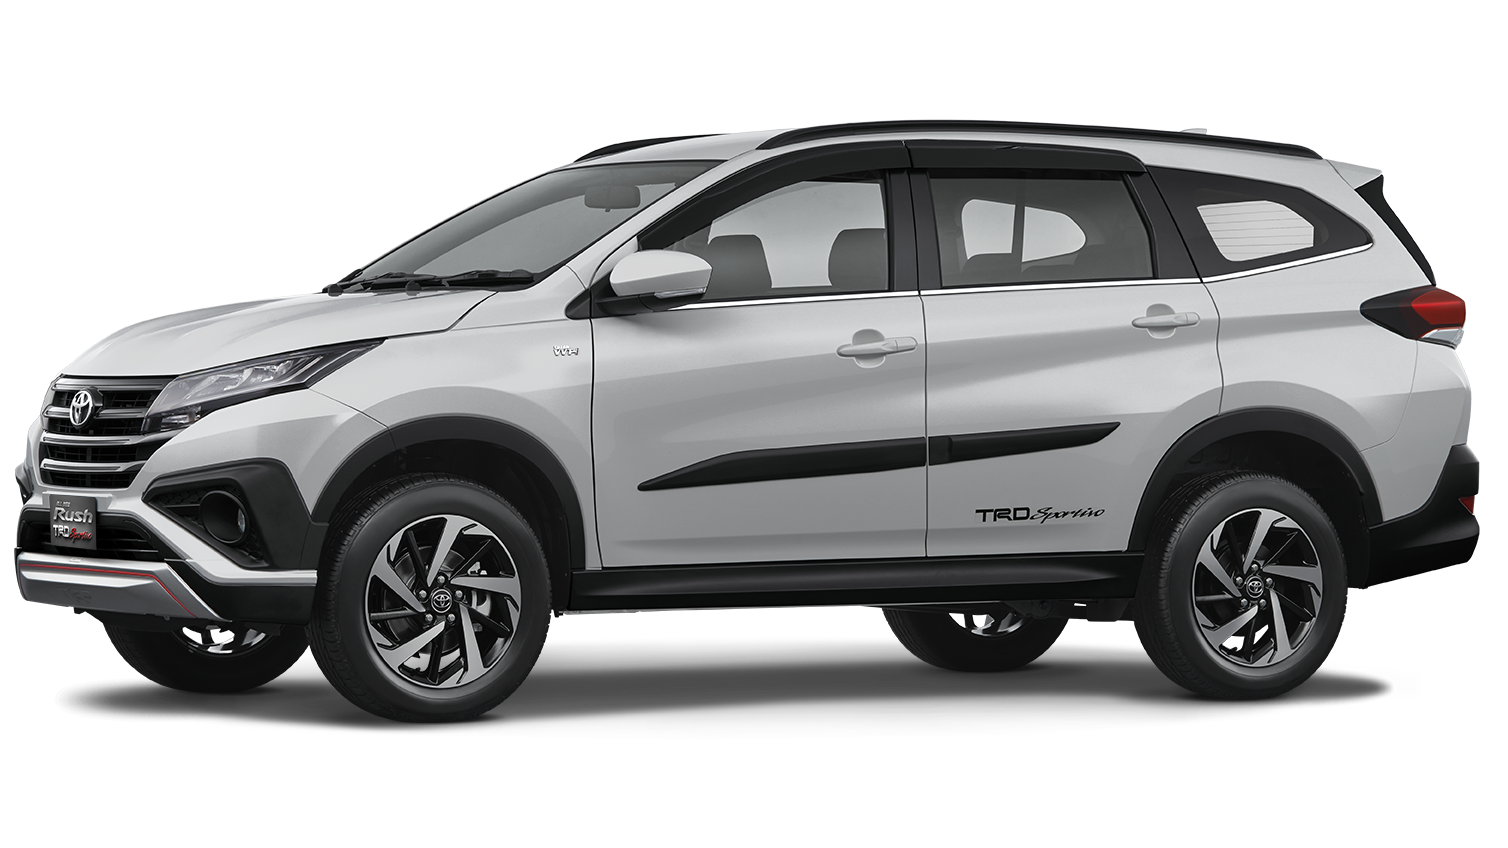 New 2018 Toyota Rush Suv Makes Debut In Indonesia Paul Tan